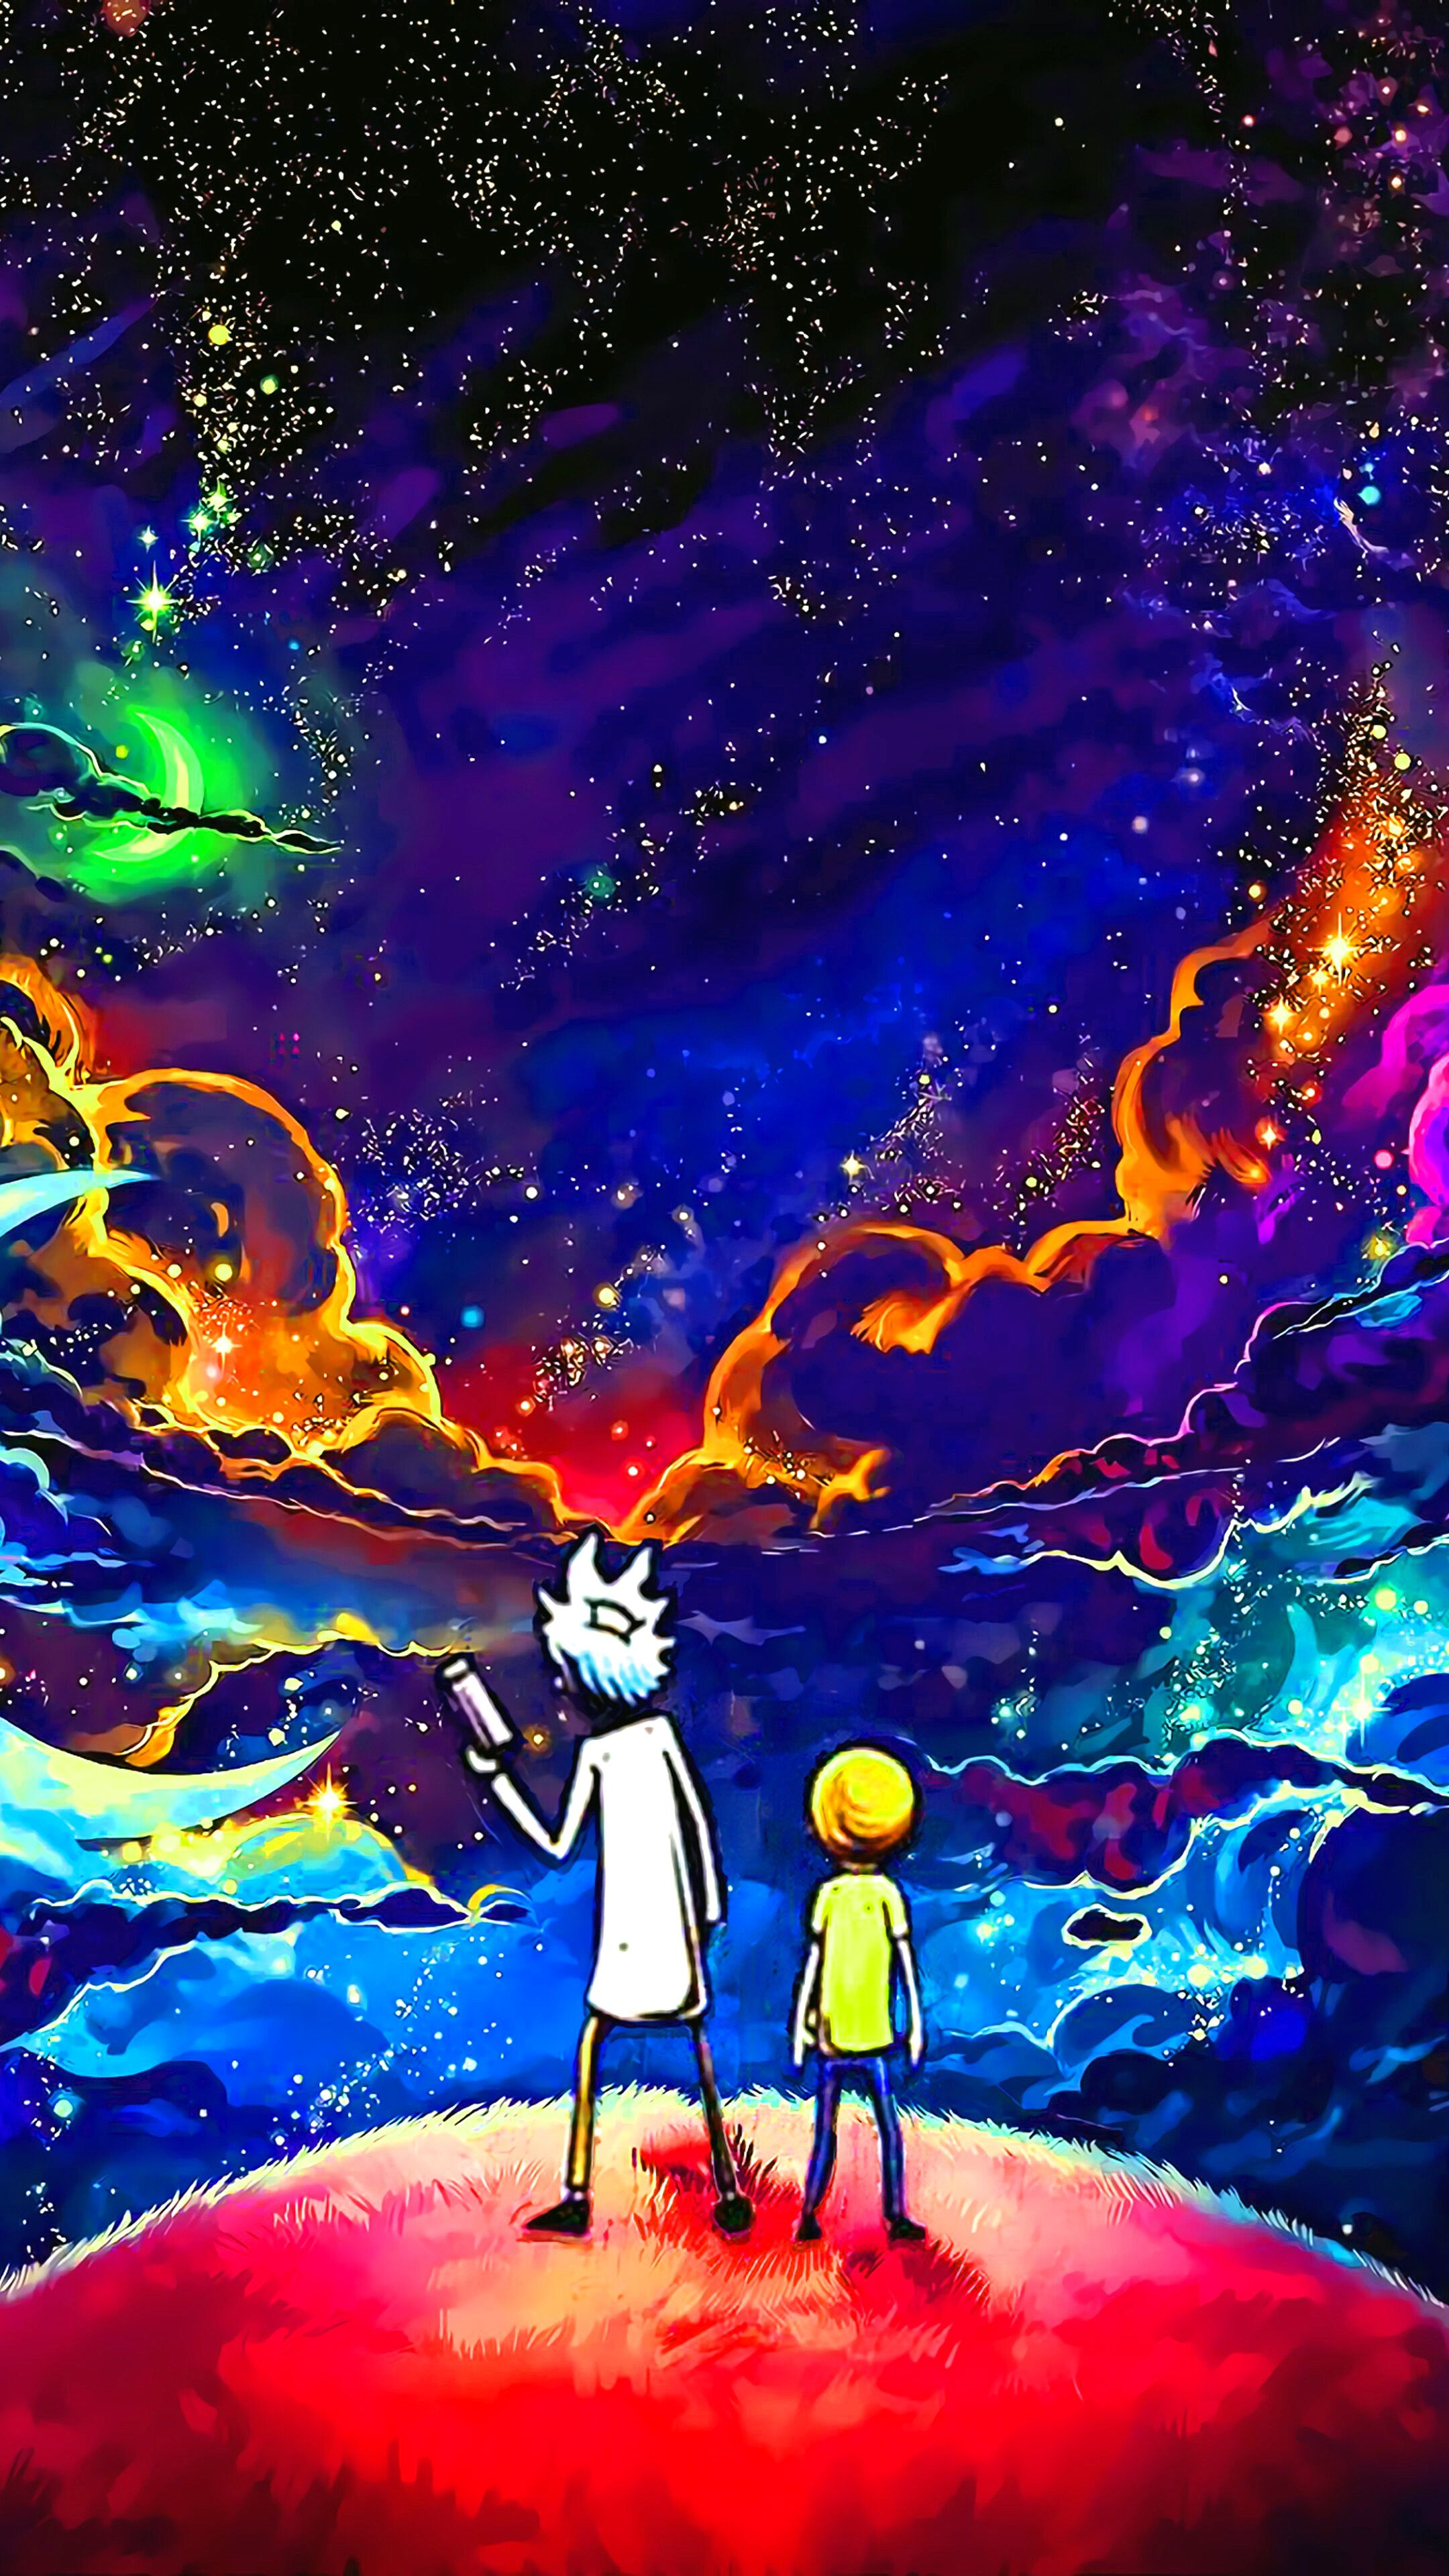 Rick and morty wallpaper iphone